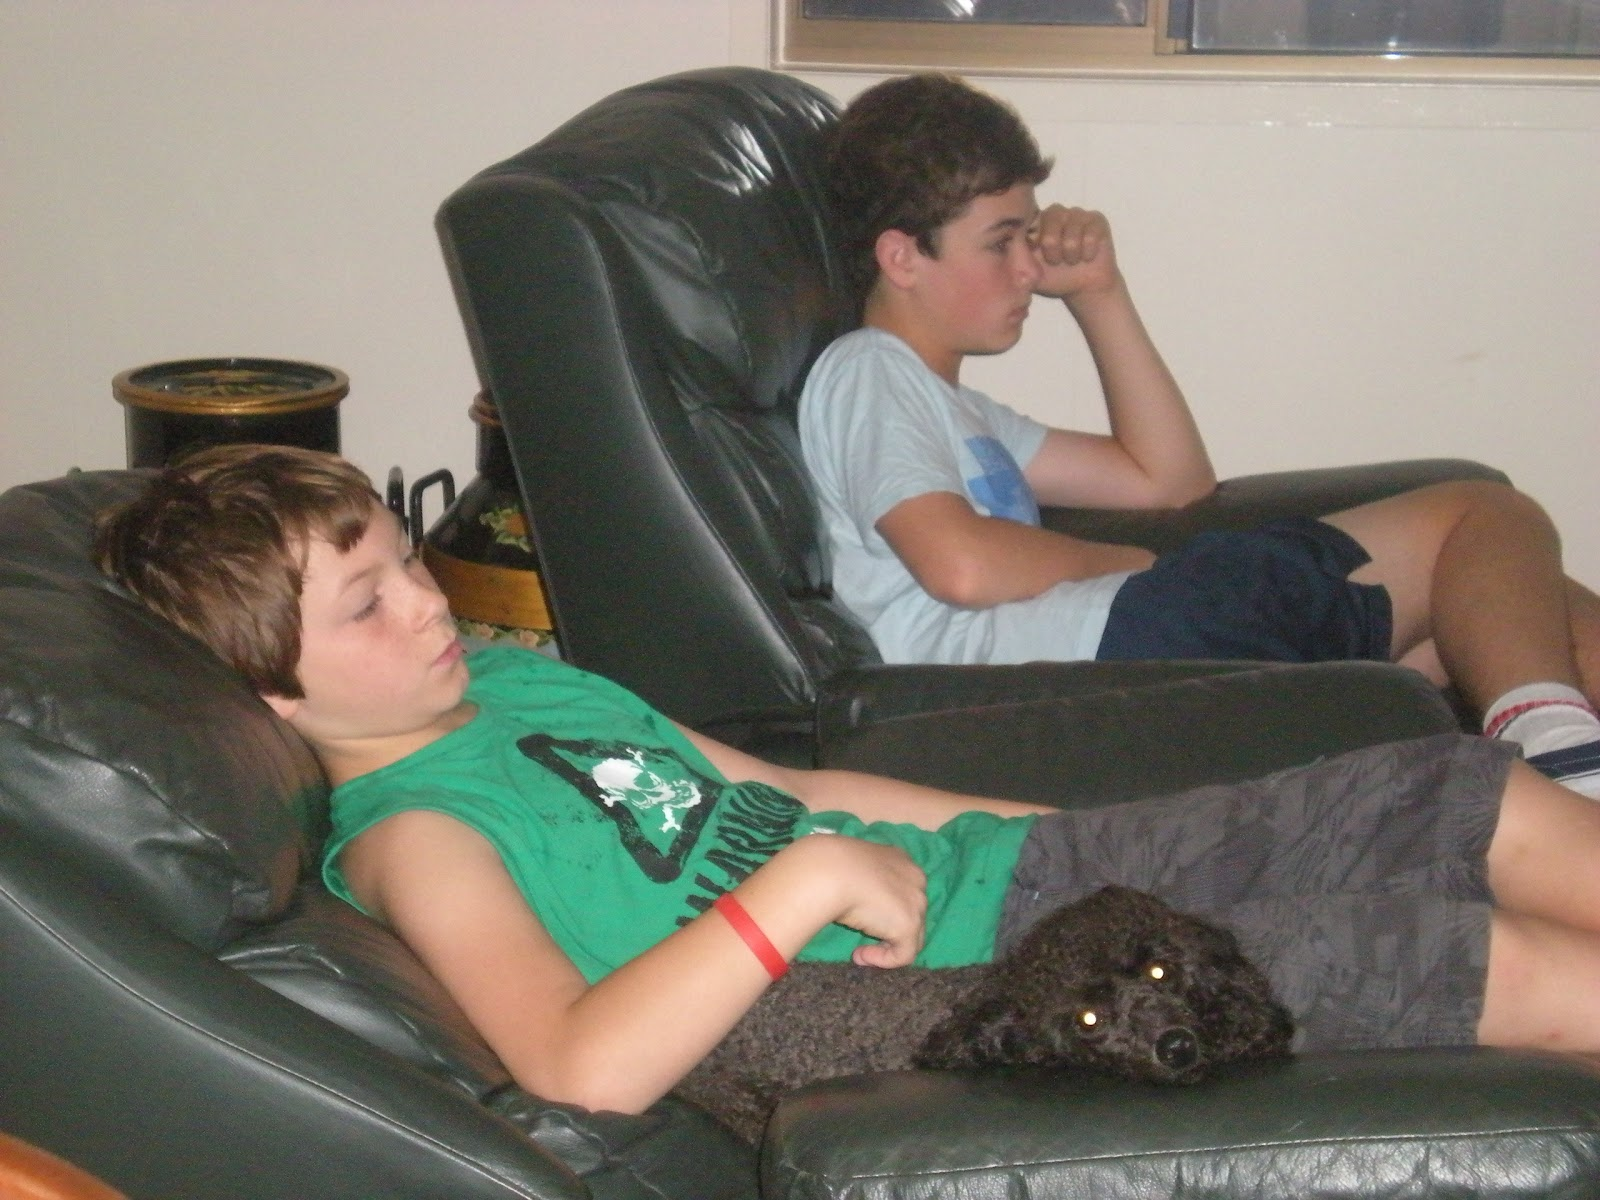 we watched loads of sport on the telly some male bonding going on